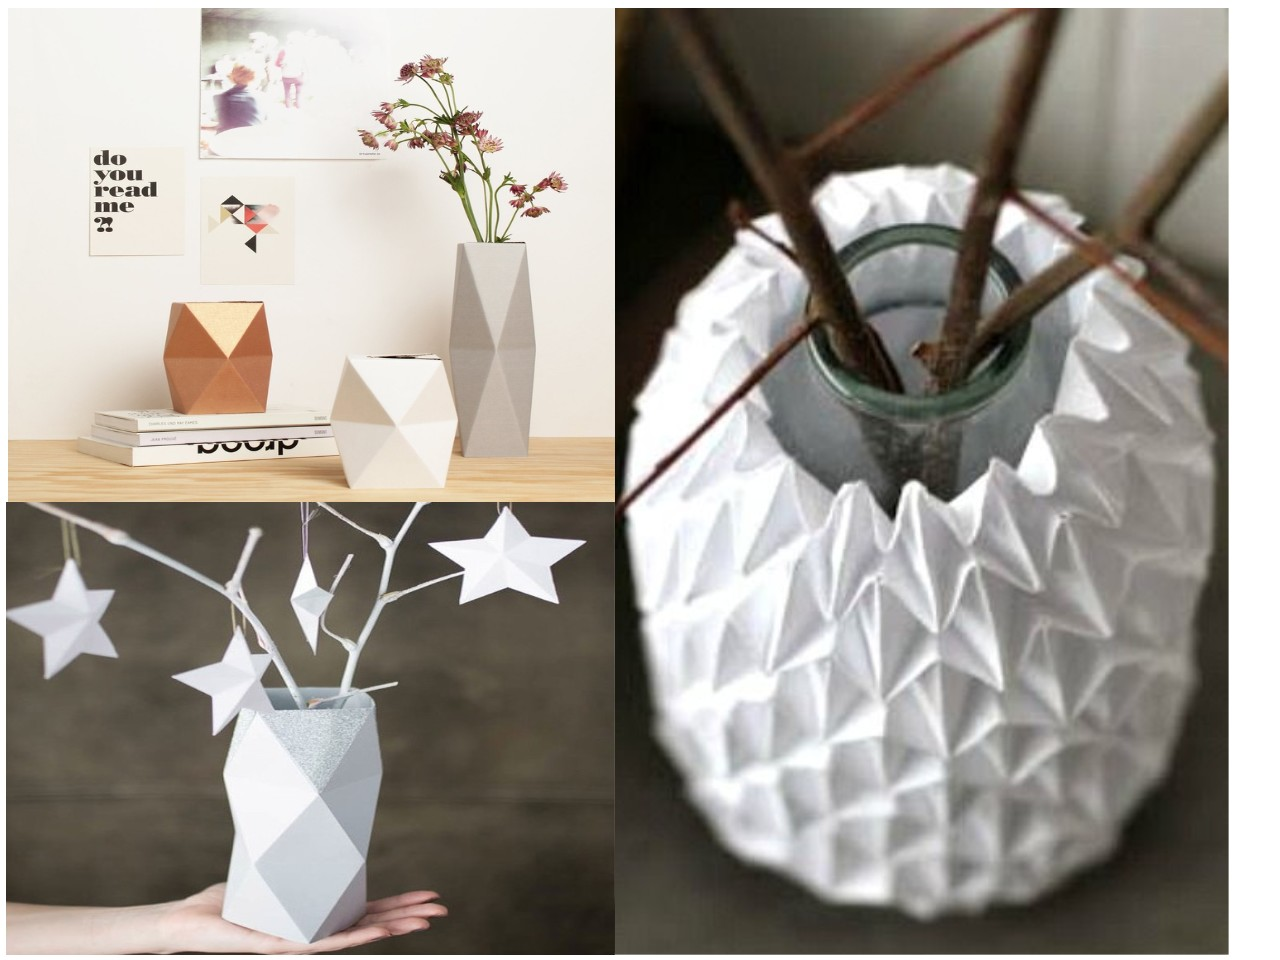 Tendencias decoraci n 2015 inspiraci n origami for Decoracion hogar tendencias 2015